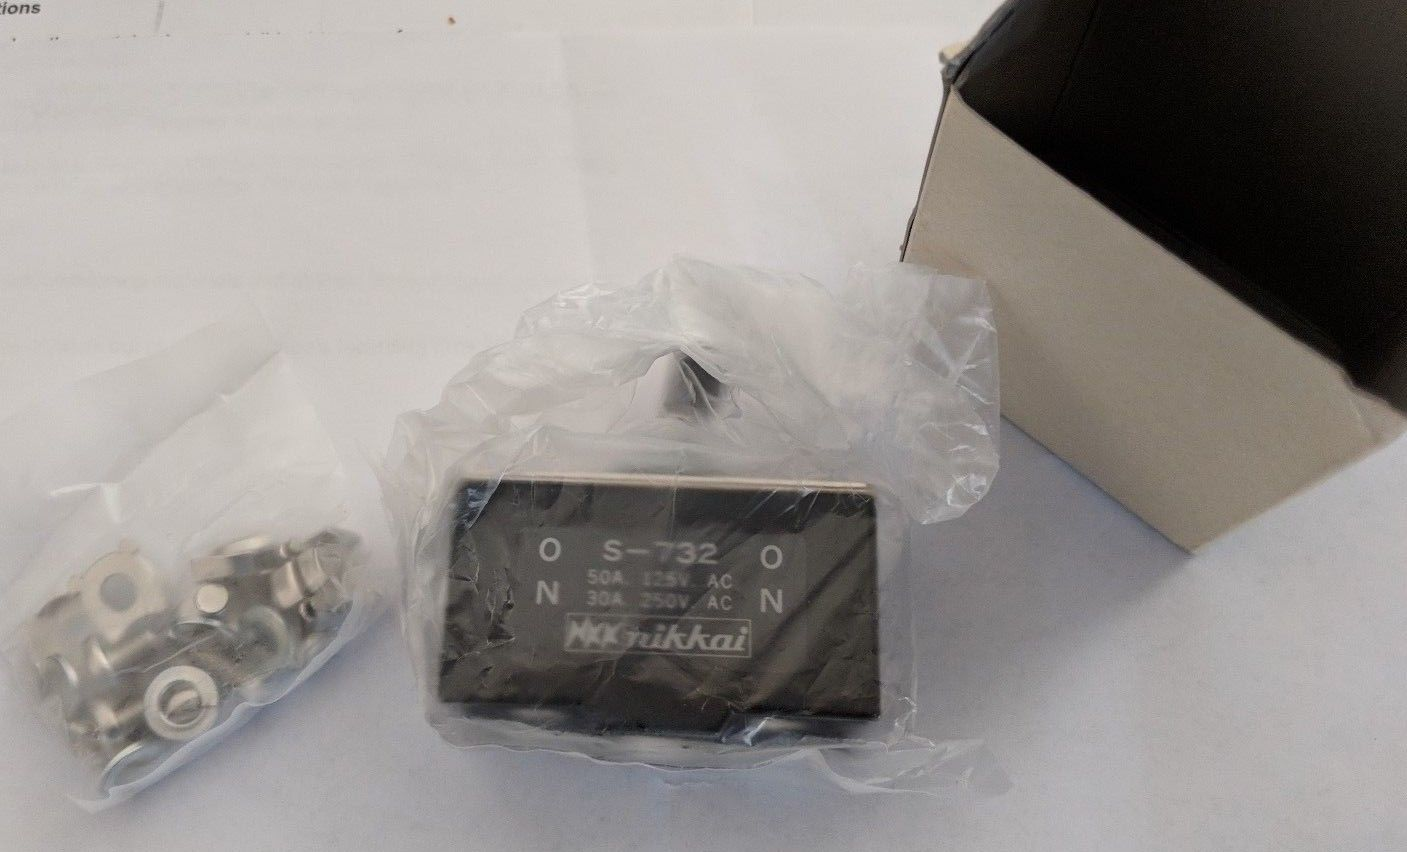 NKK Switches S732 S-732 50Amp and 50 similar items